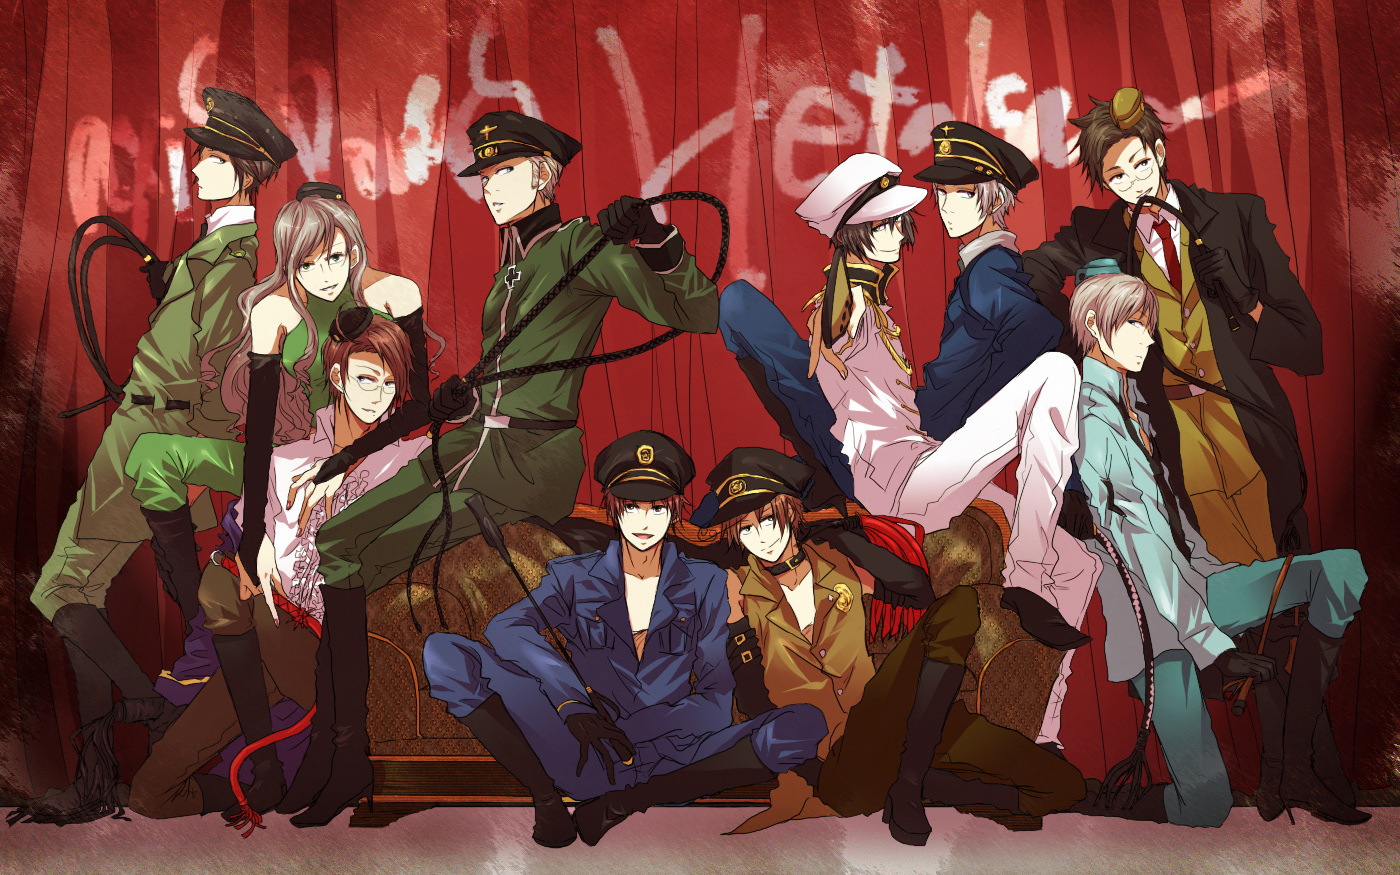 2p hetalia images 2p england hd wallpaper and background photos - Hetalia Images Hetalia Wallpaper Photos 17399155